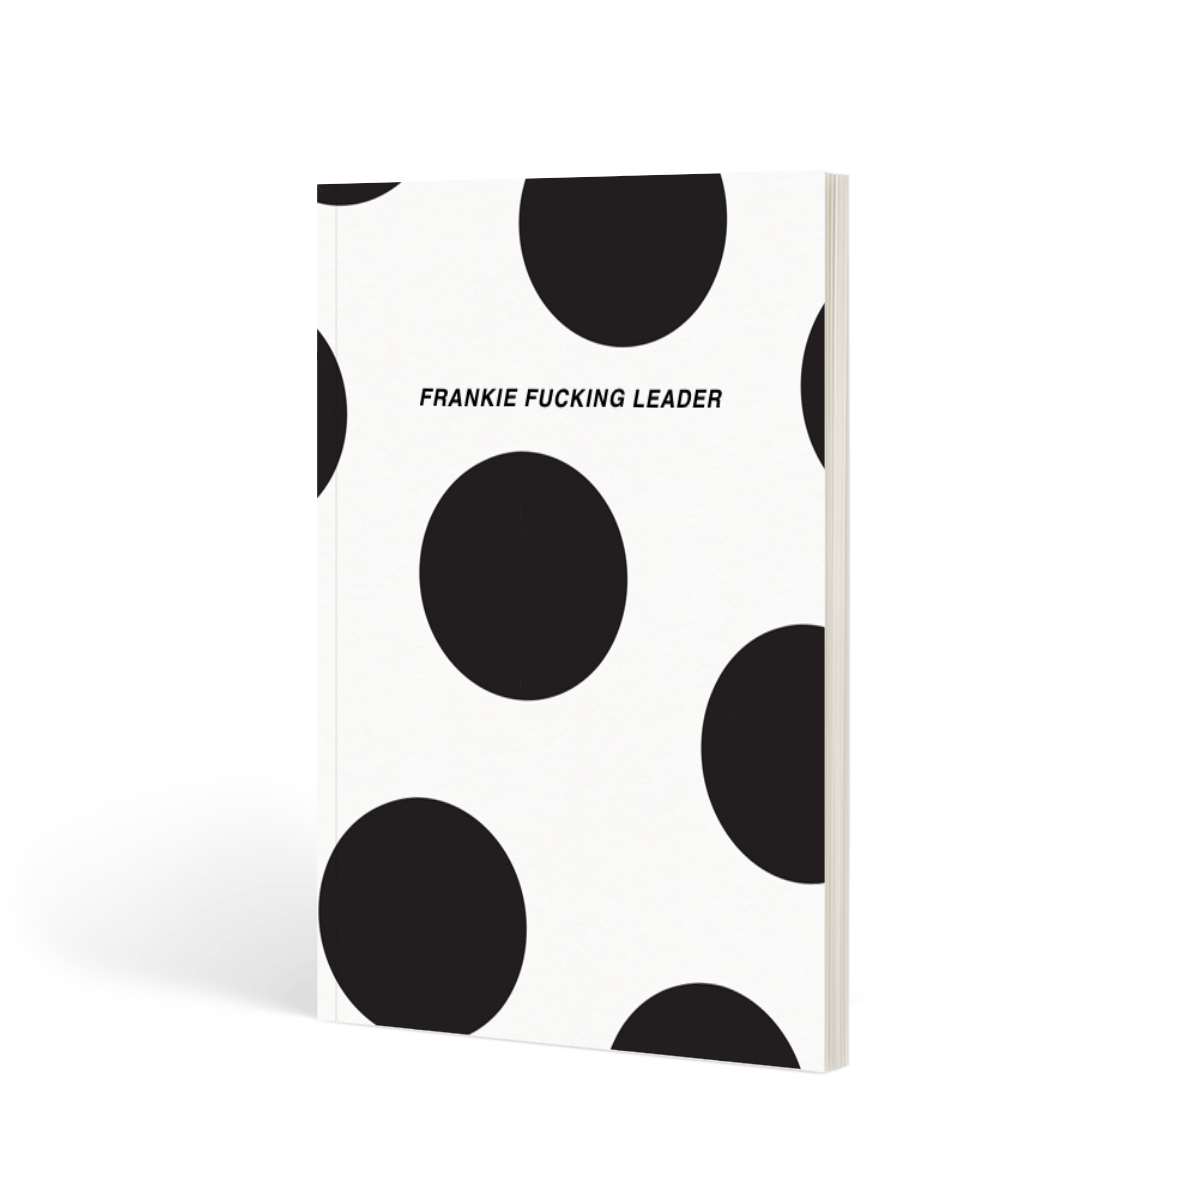 Https%3a%2f%2fwww.papier.com%2fproduct image%2f57117%2f6%2ff king polka dots 13717 front 1542370436.png?ixlib=rb 1.1